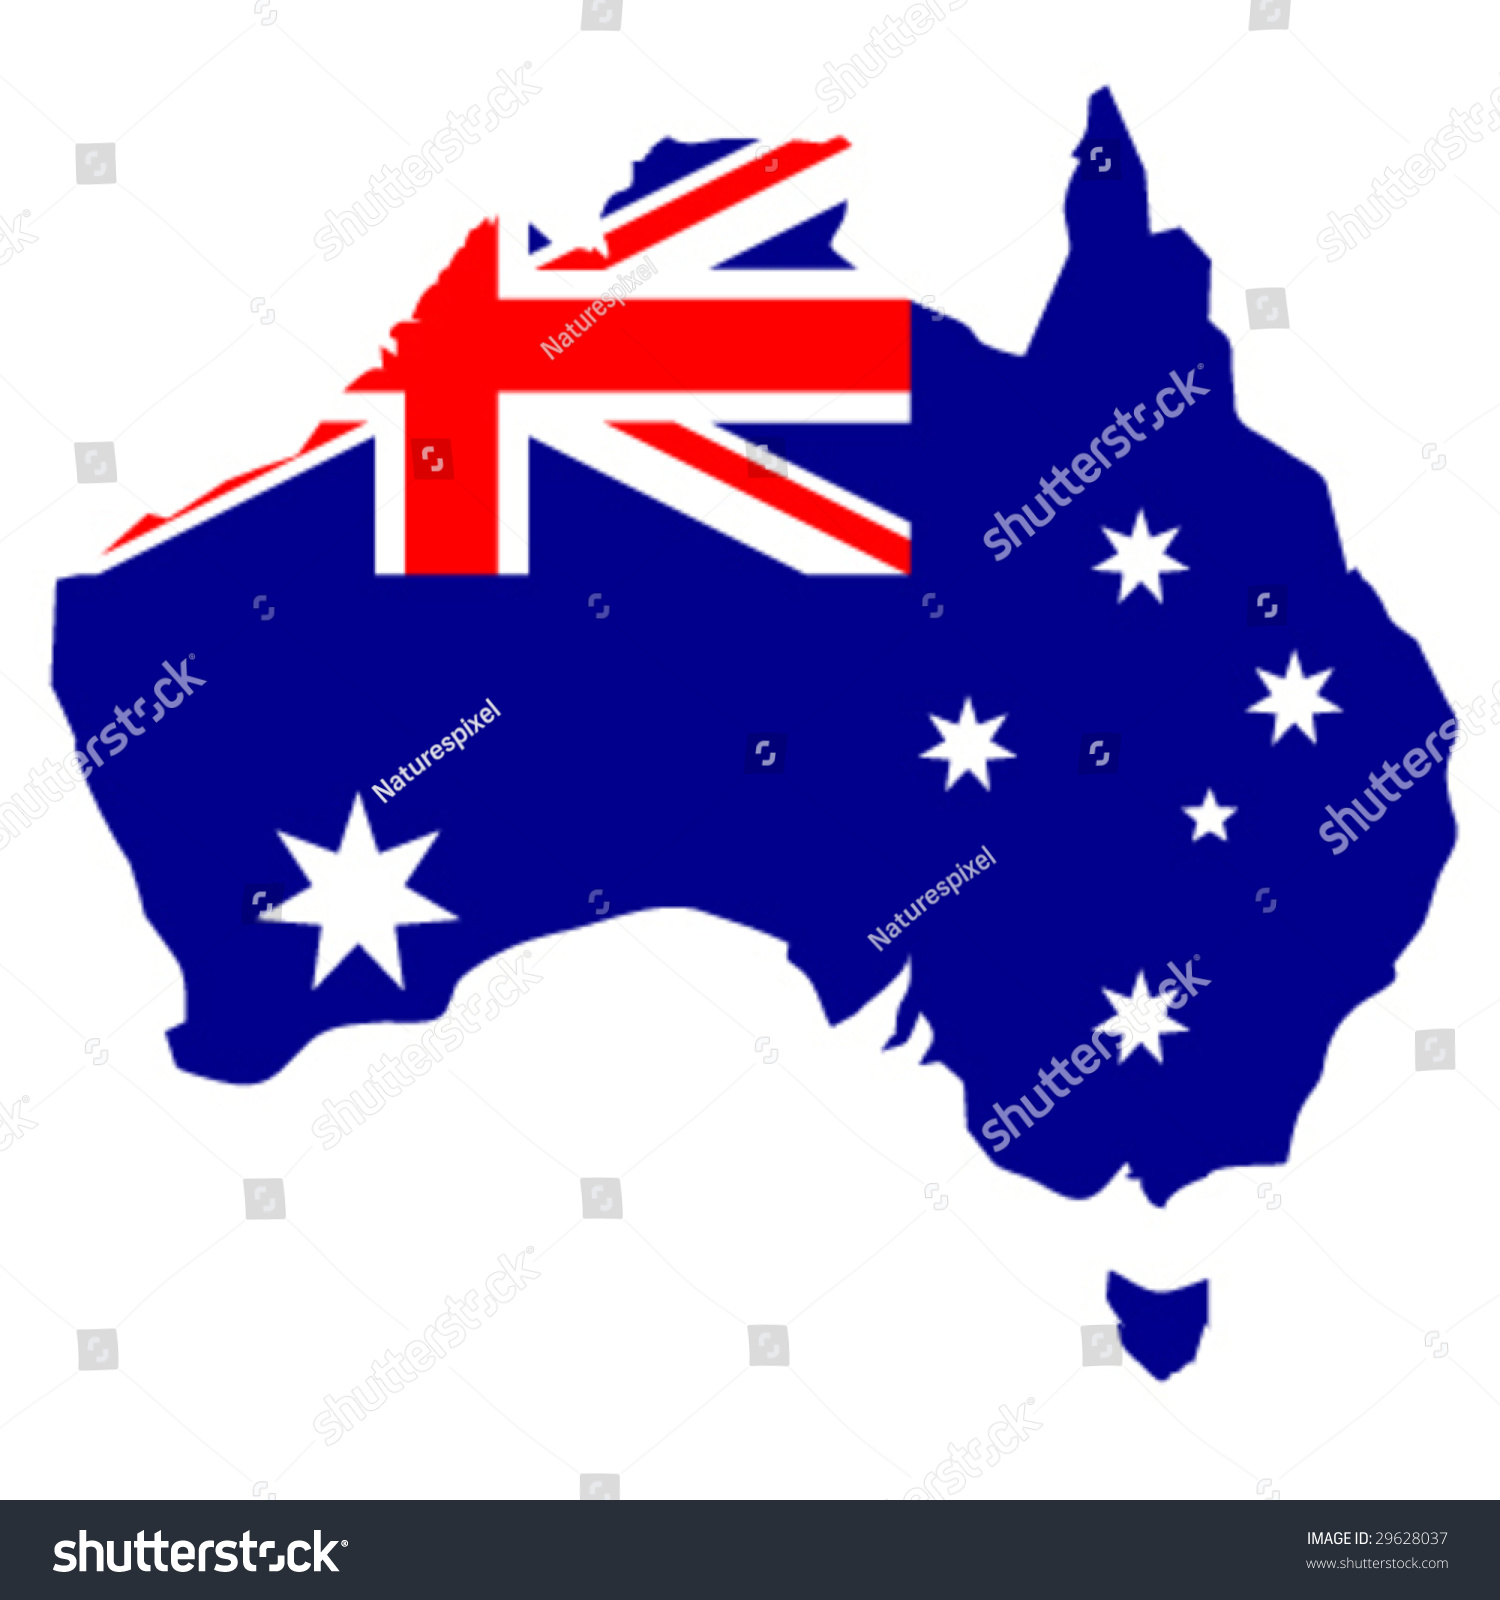 Was Tasmania Joined To Australia Stock Vector Australian Flag In The Shape Of